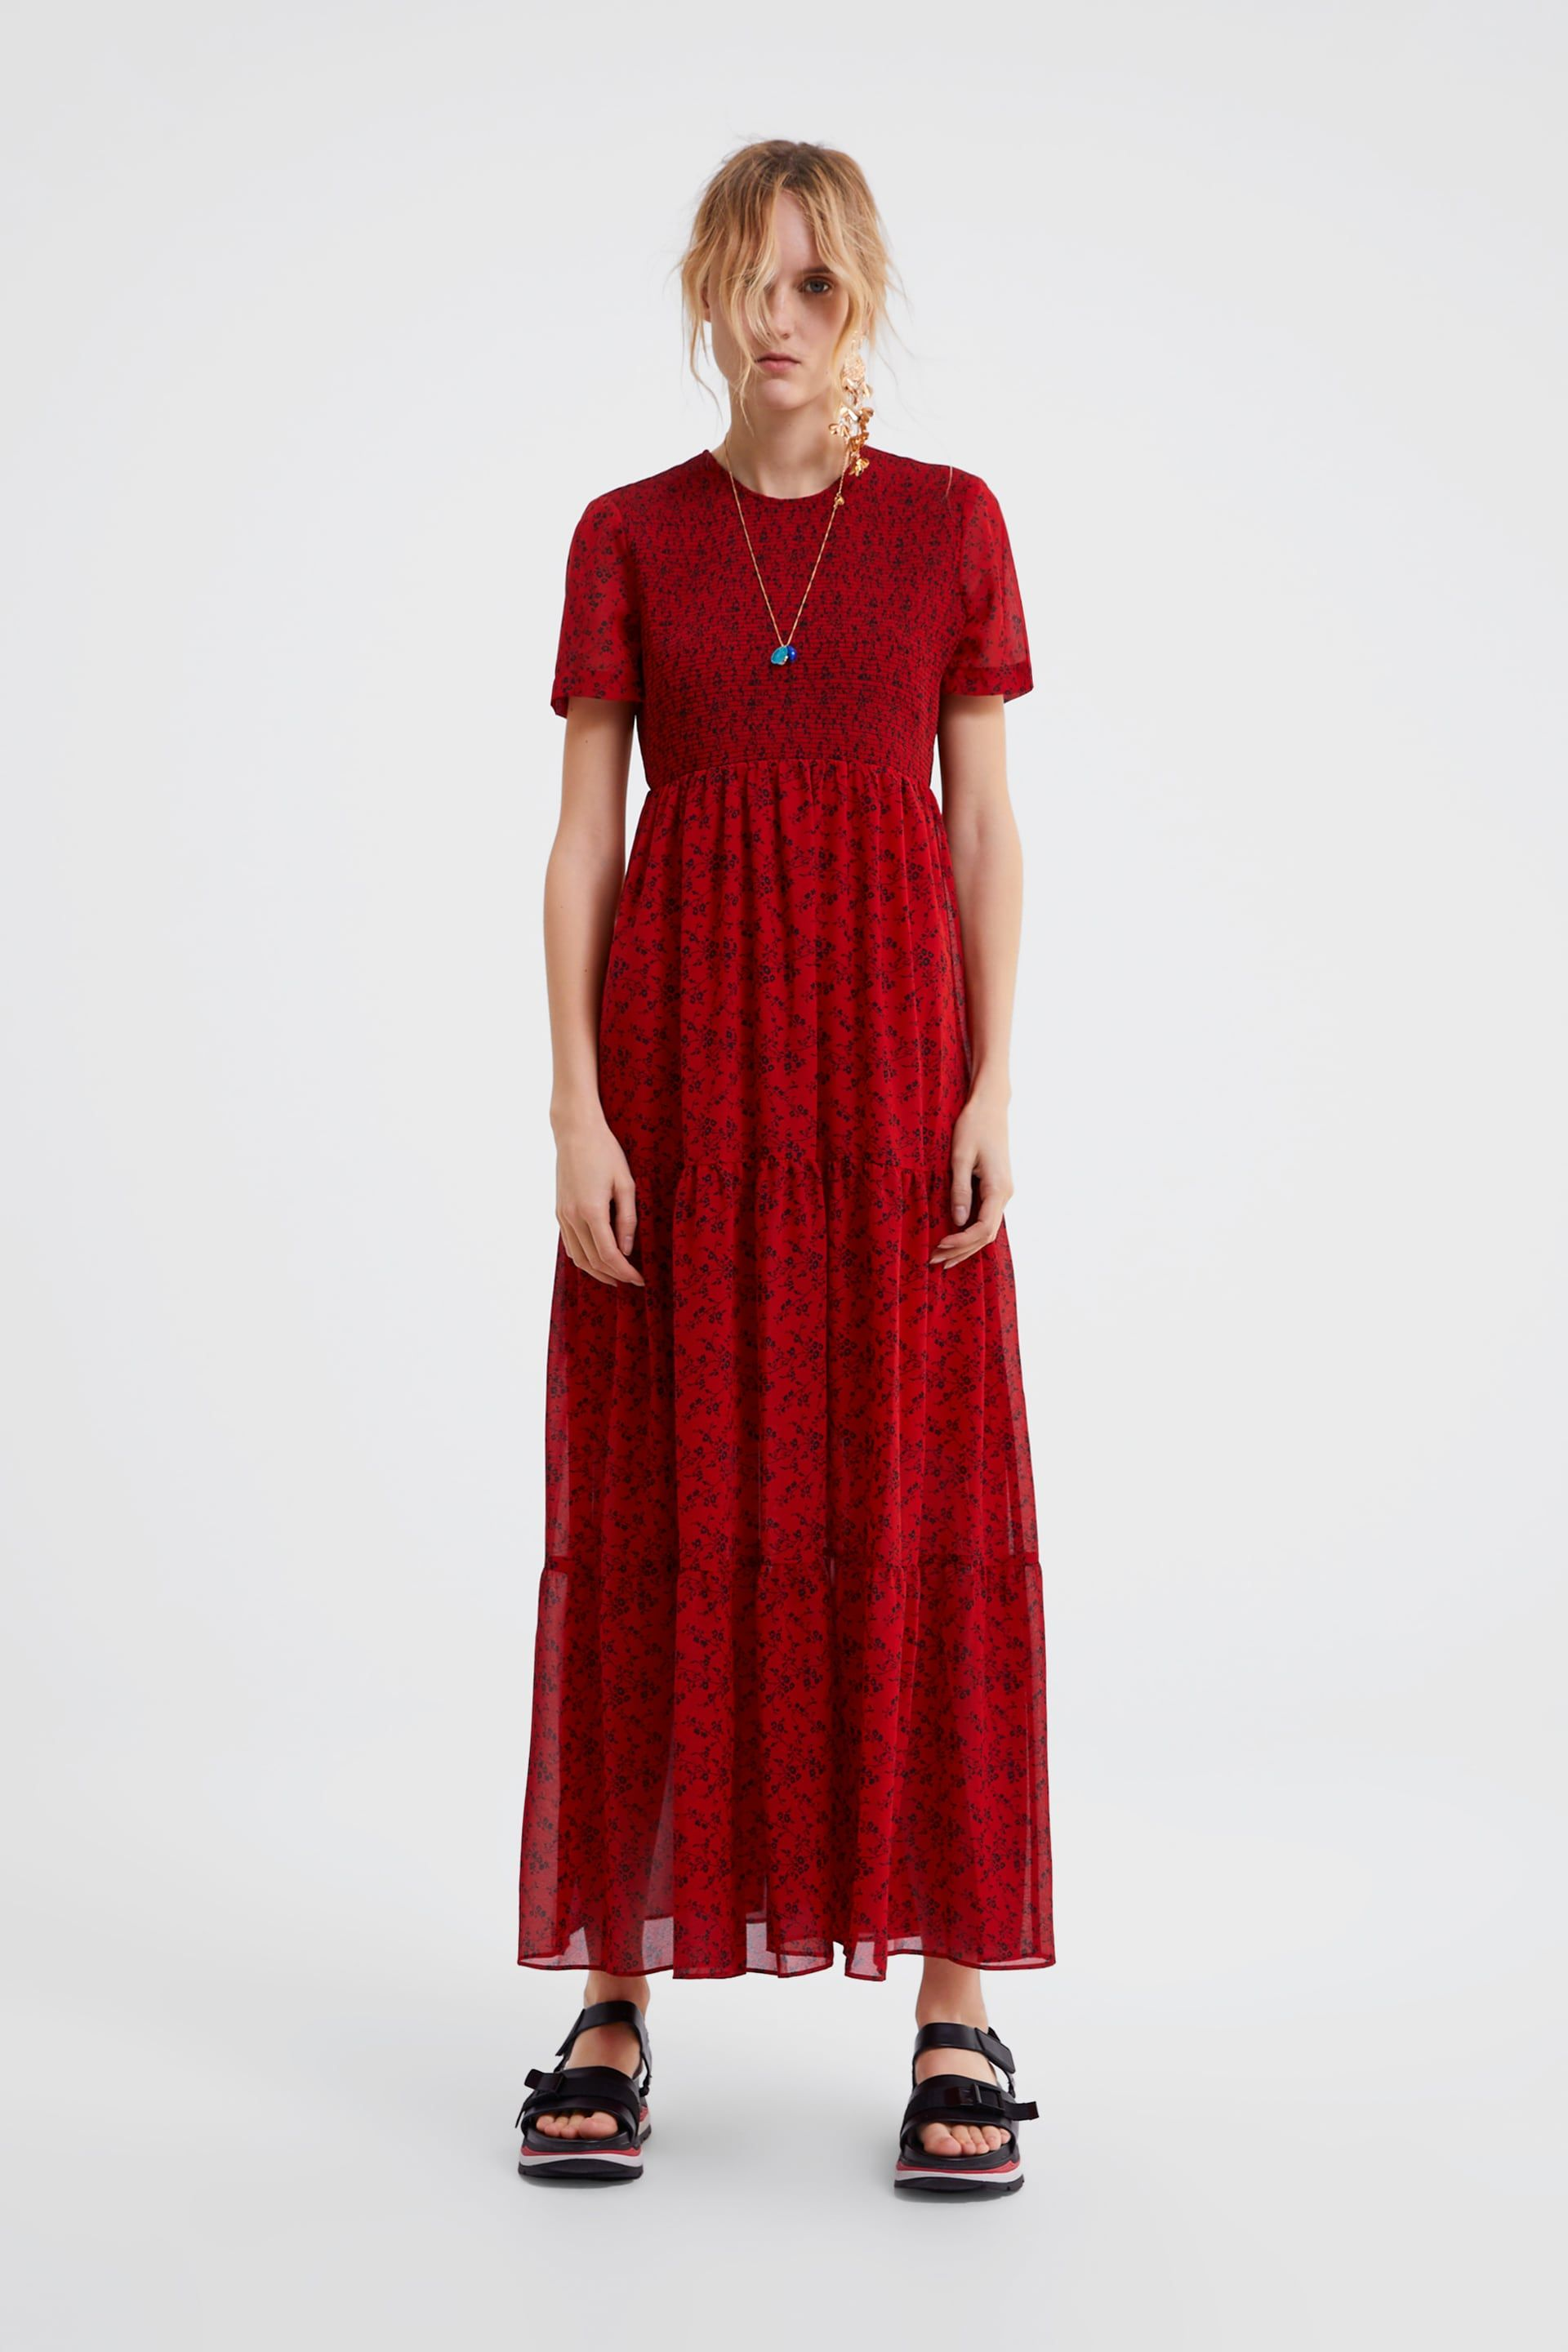 9cd379a0 Floral print dress in 2019 | Clothing | Red floral maxi dress ...